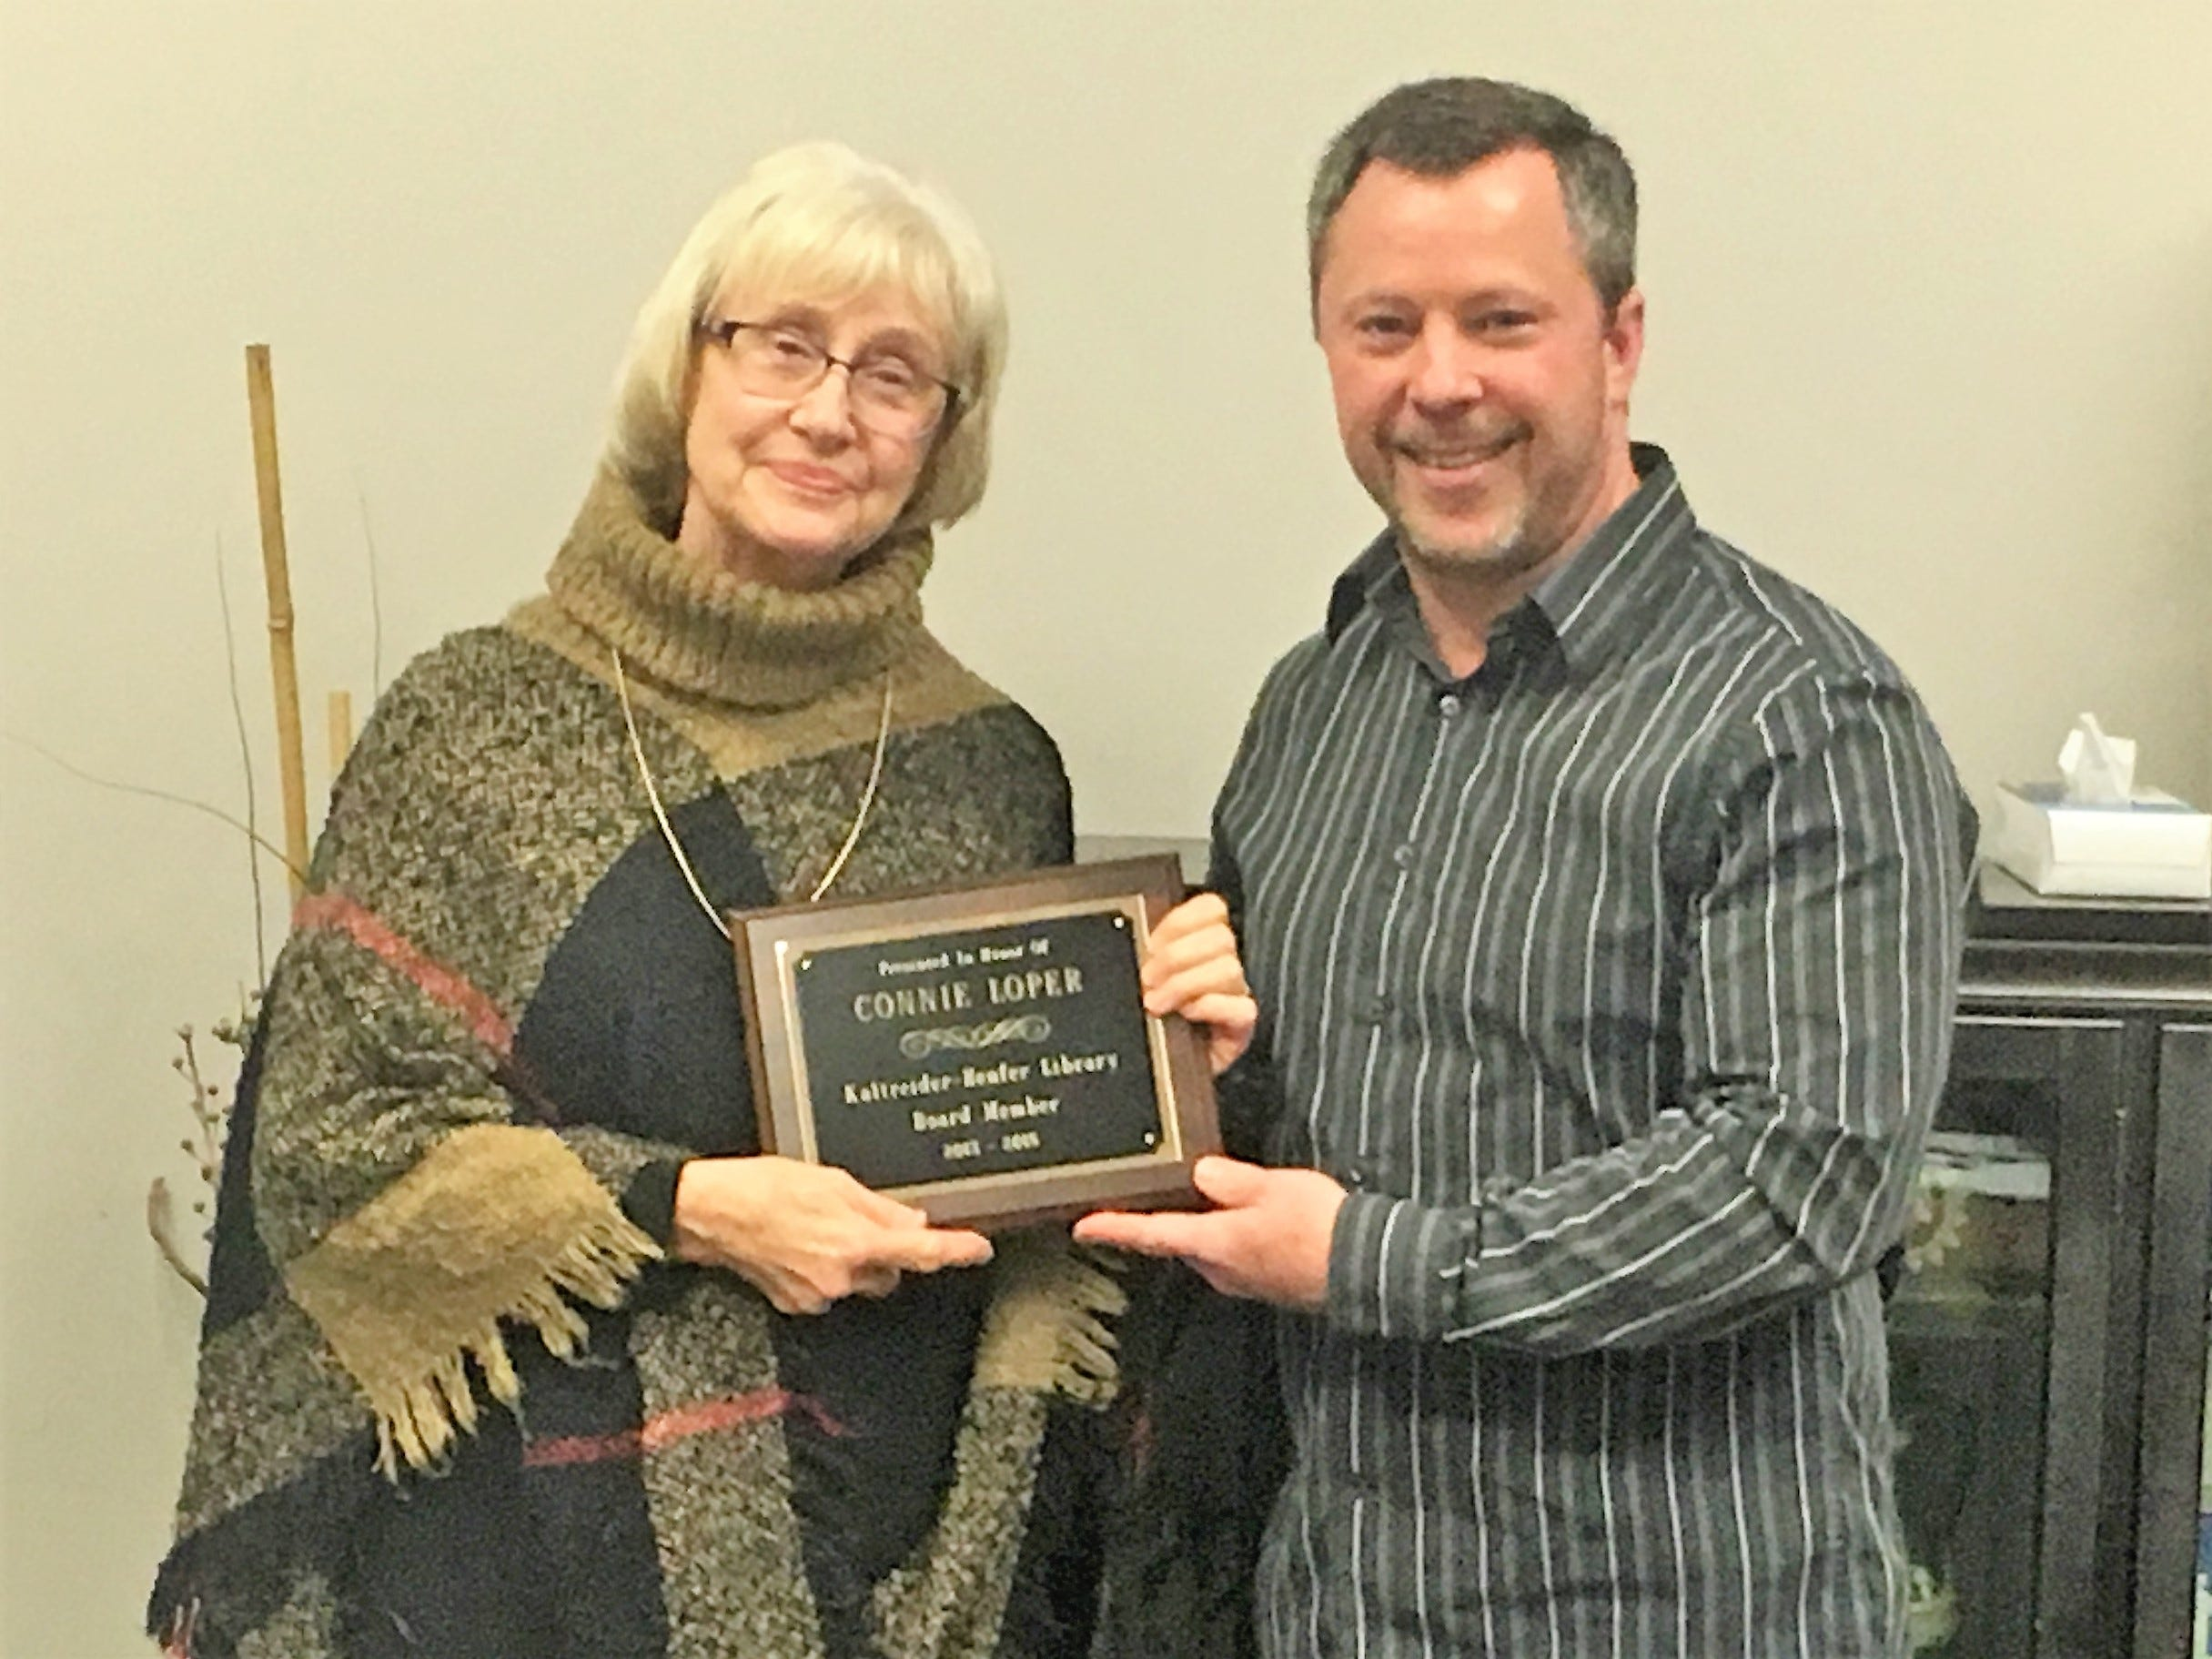 Kaltreider-Benfer Library honored long-time board member Connie Loper for her years of service from 2013-2018.  Ms. Loper served as Secretary of the Board from 2014-2018, and was instrumental in improving the library's fundraising and advocacy initiatives. Pictured are Connie Loper and John Fishel, President, Kaltreider-Benfer Library Board of Directors. submitted